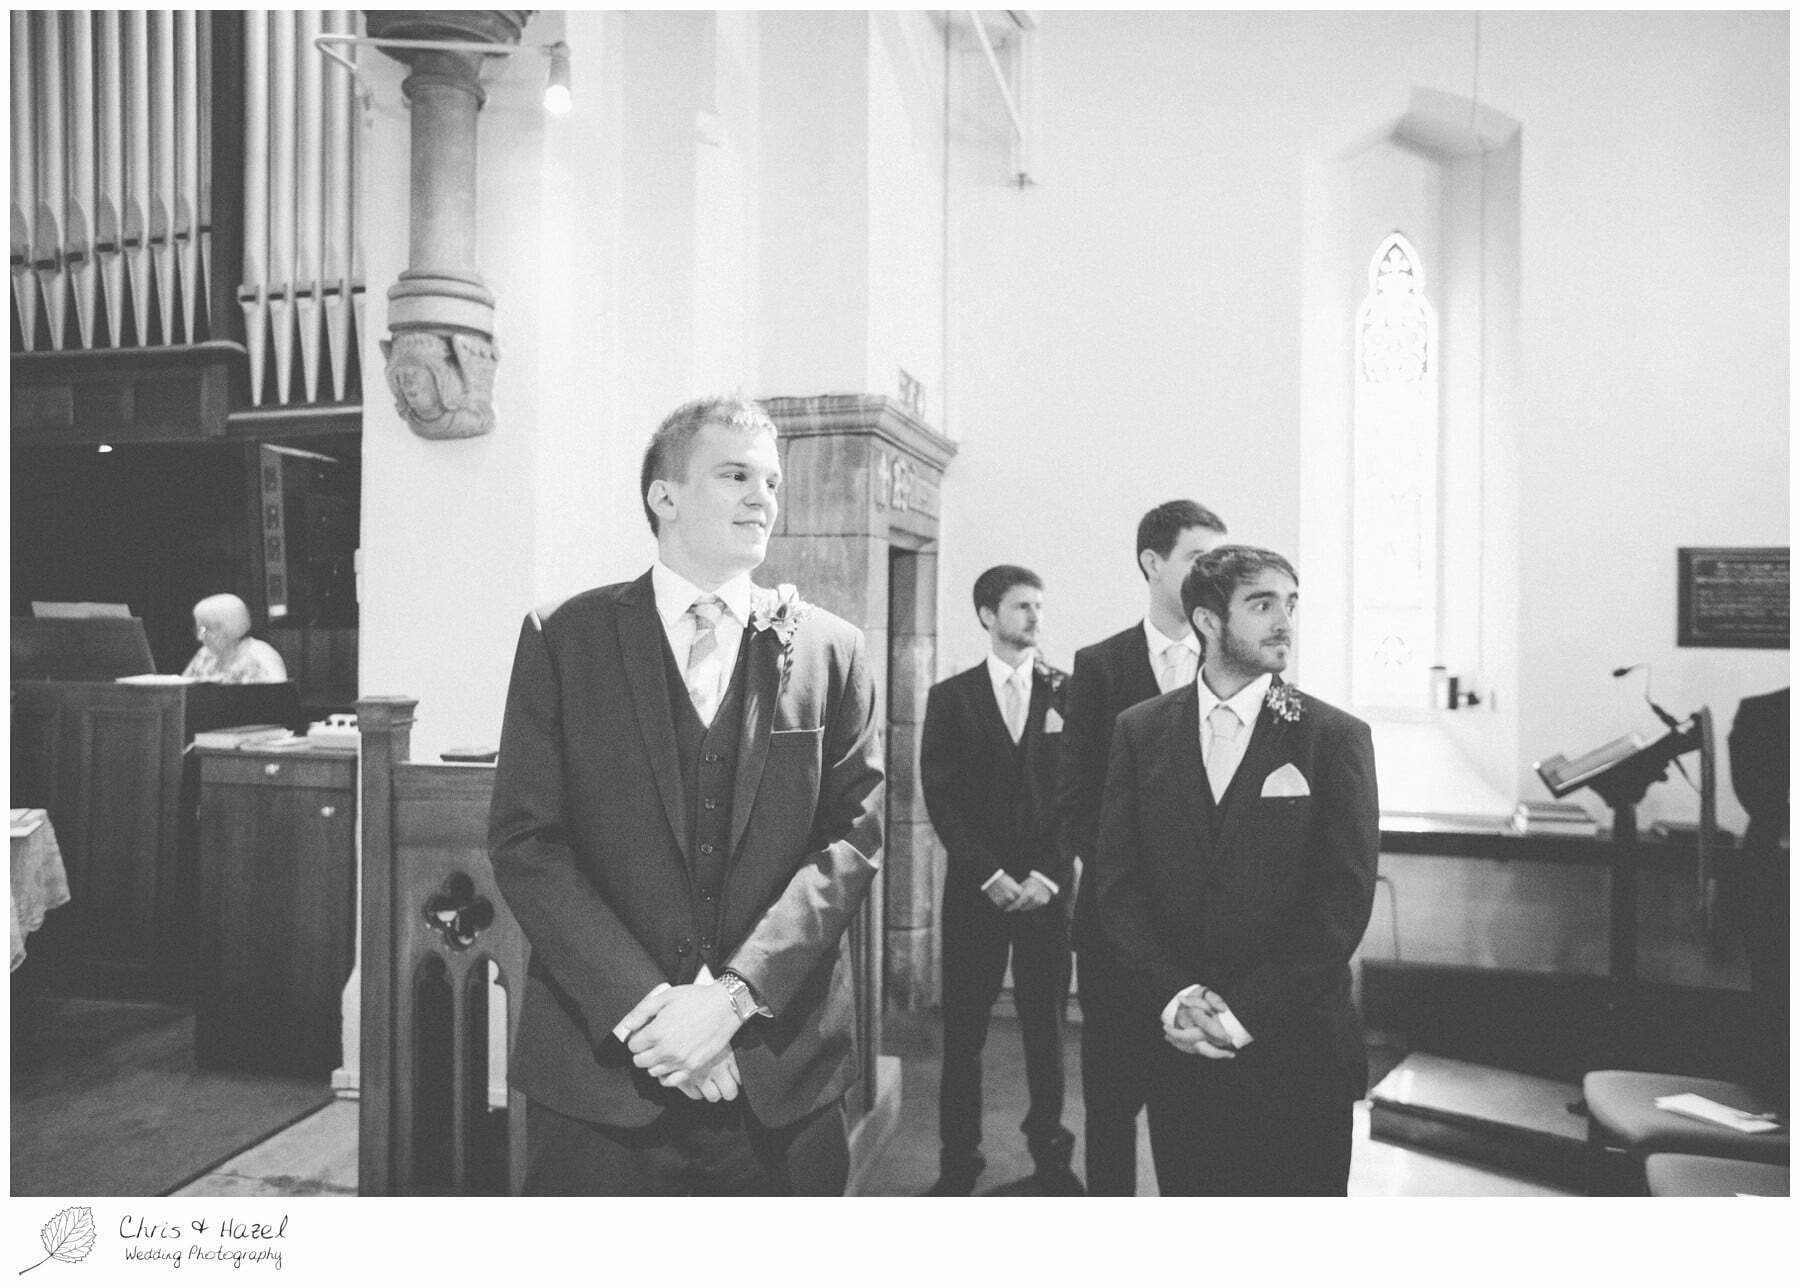 groom at altar, st marys church, wedding, south milford Wedding Photographer, the engine shed, Wedding Photography wetherby, Chris and Hazel Wedding Photography, stevie pollard, stevie standerline, paul standerline,